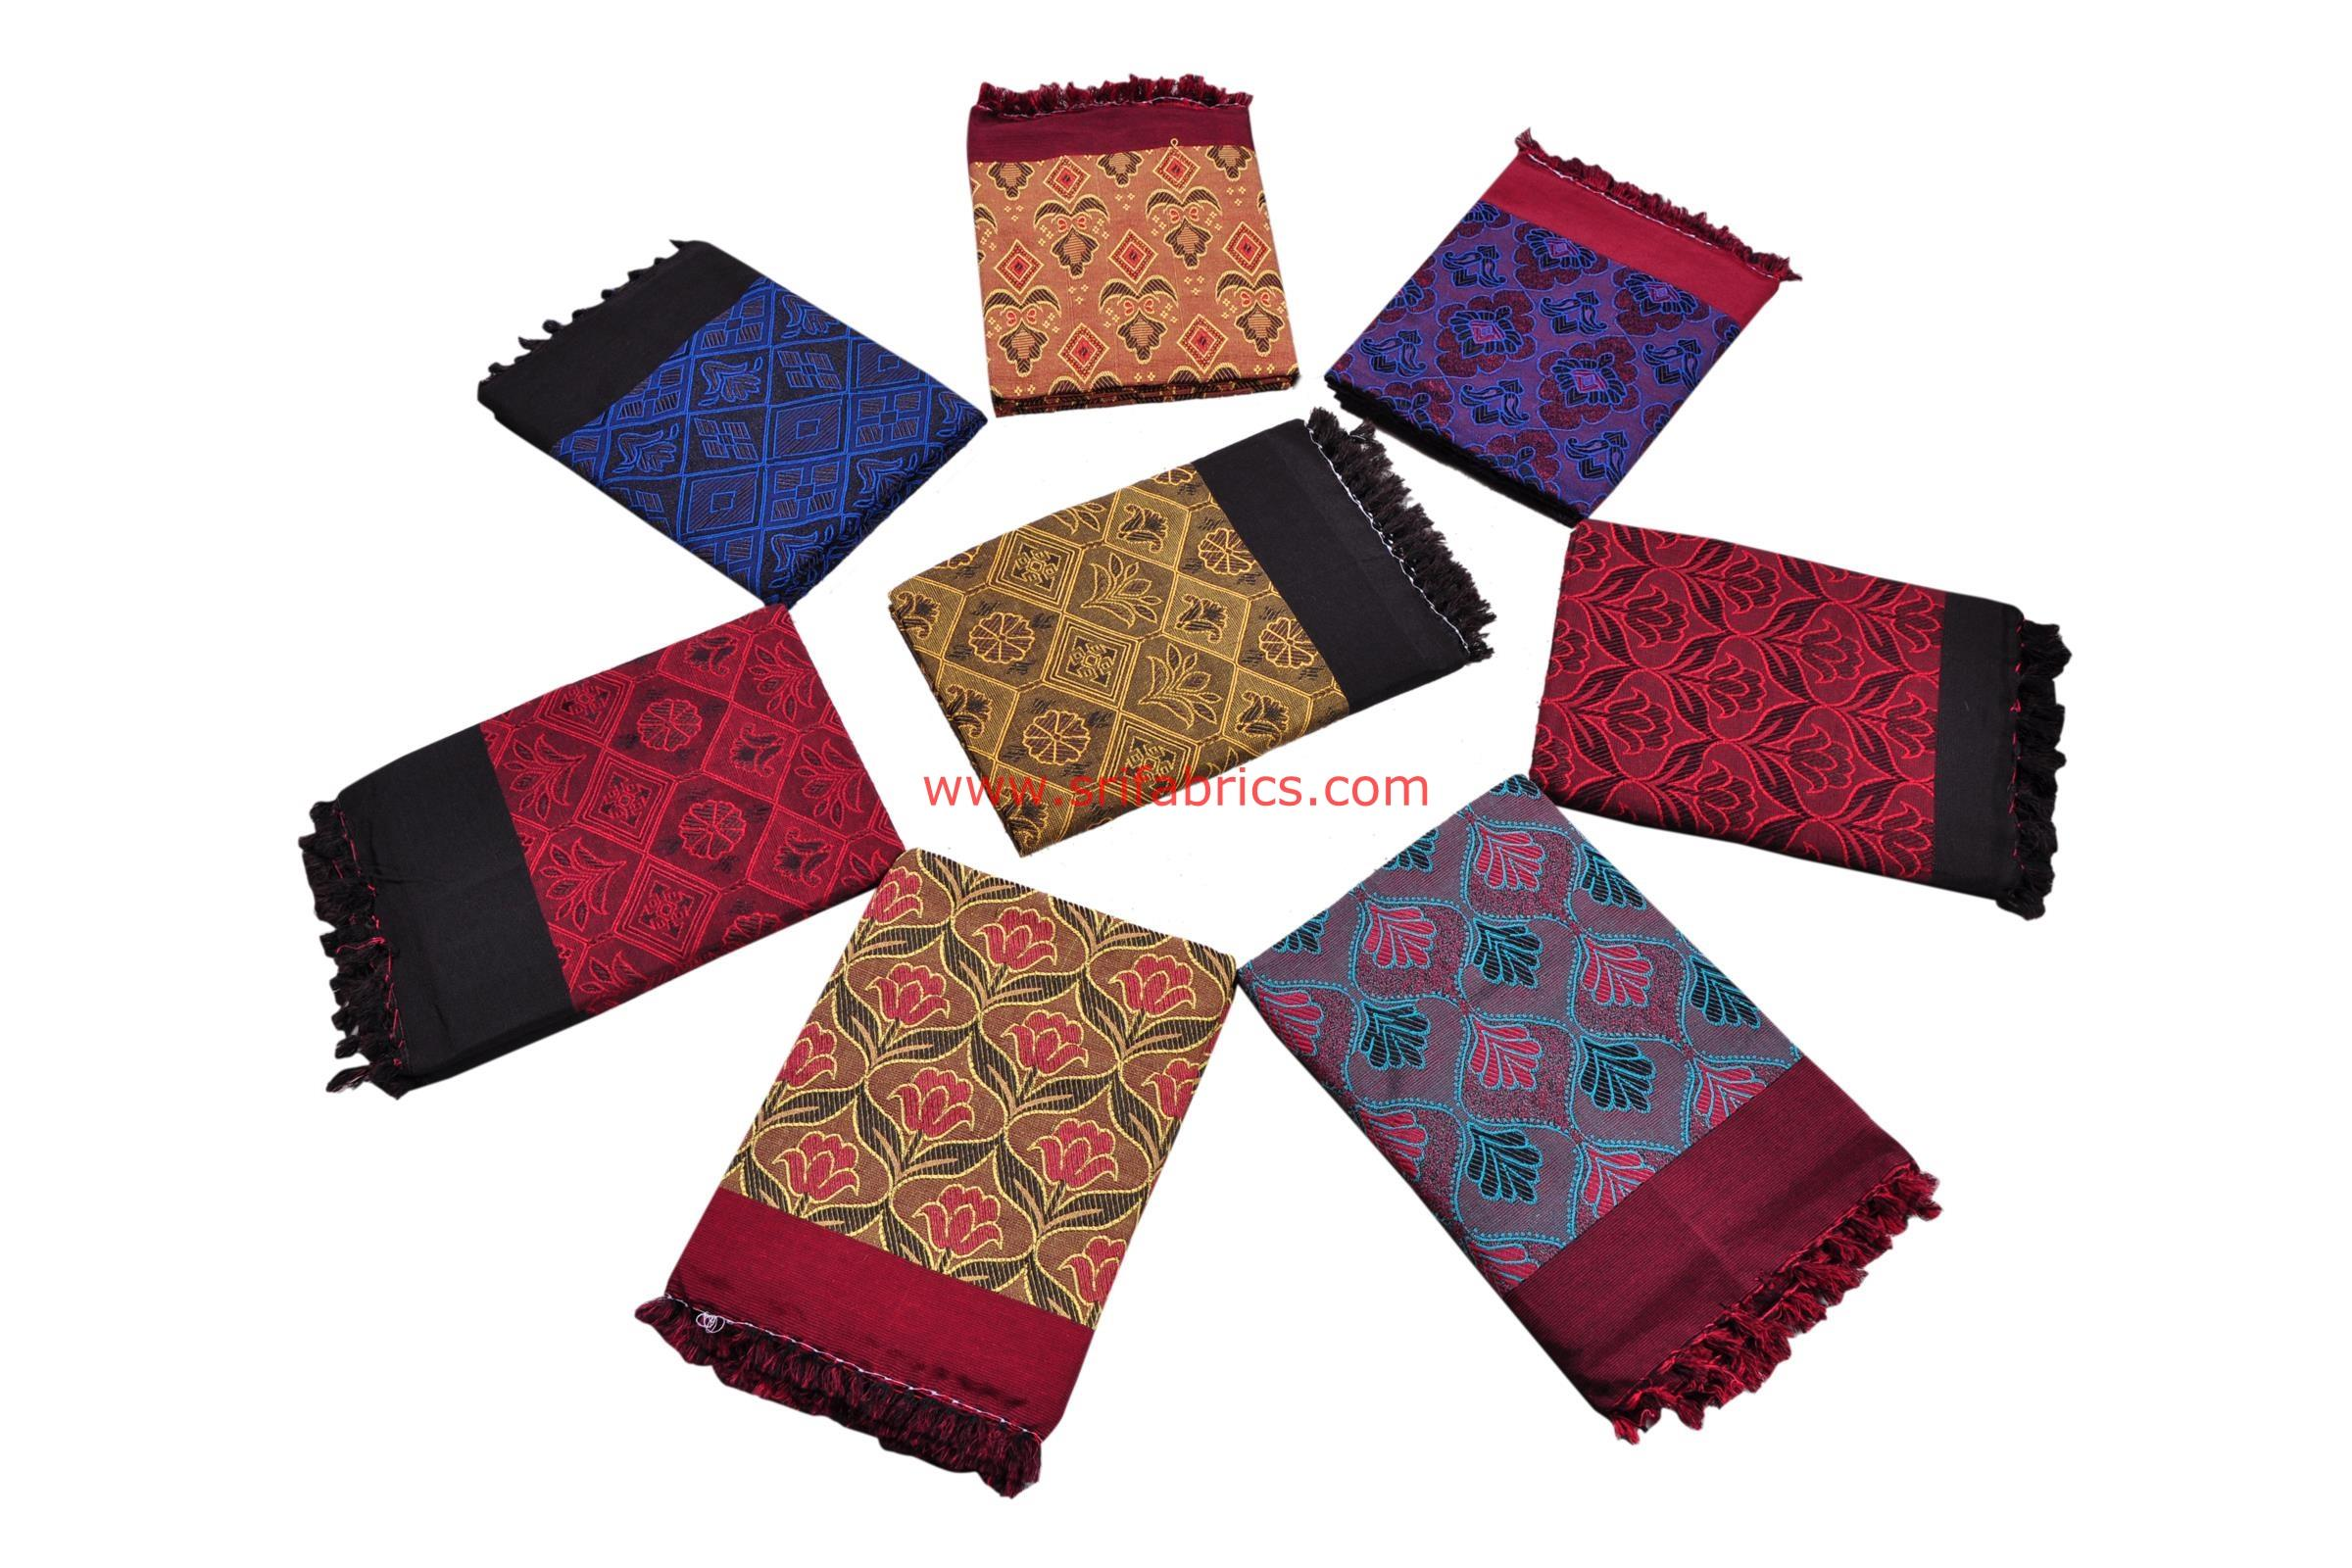 Export Quality Bedsheets in Madurai.